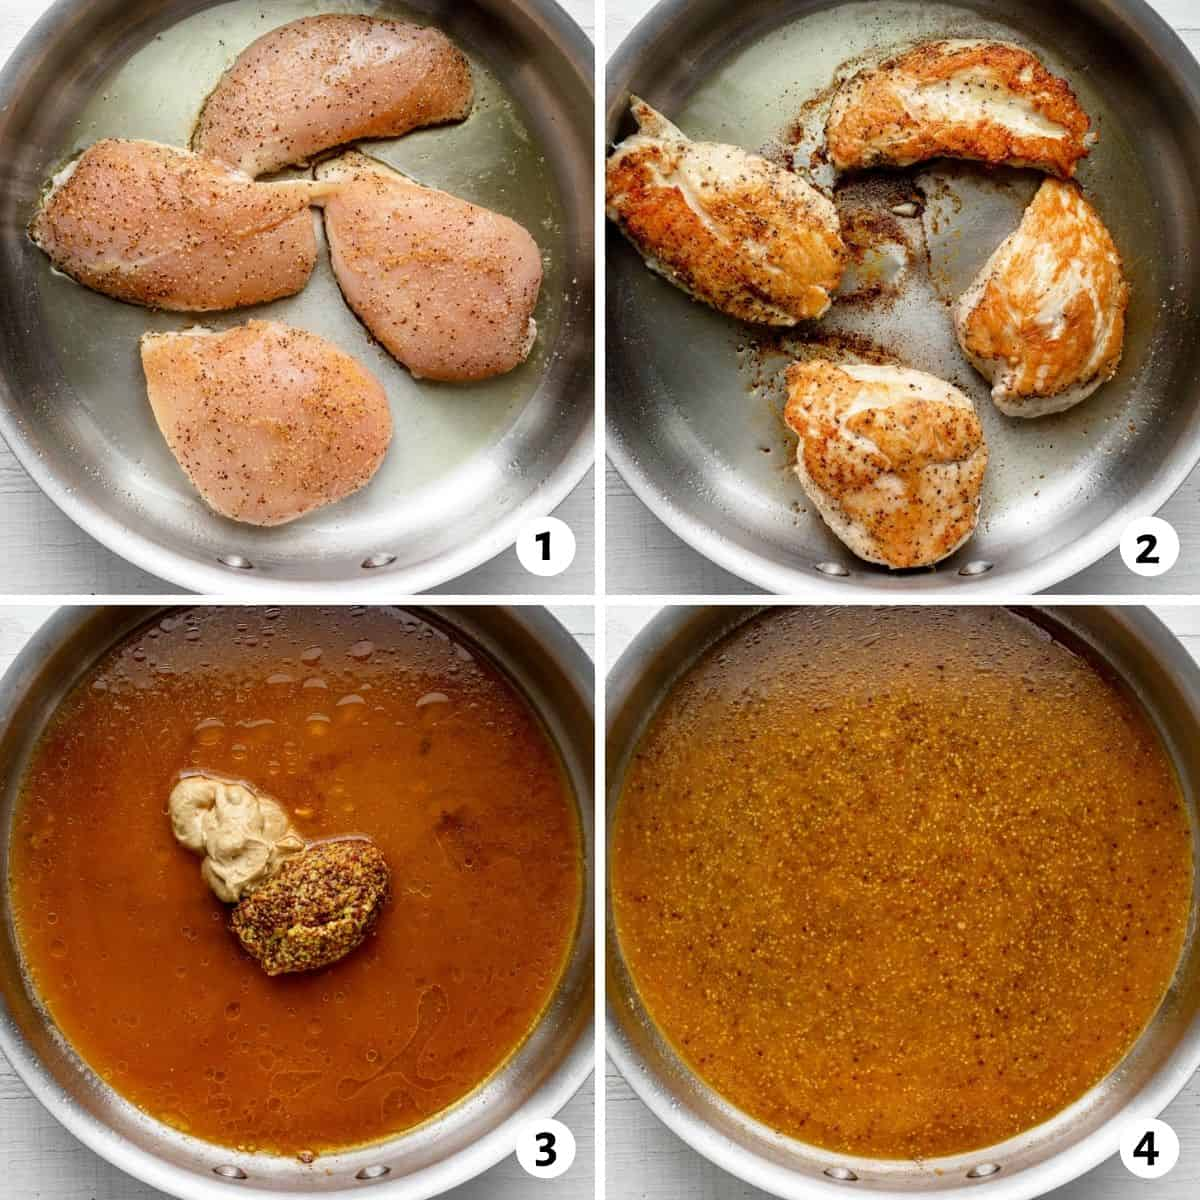 4 image collage to show the process for cooking the chicken and then making the sauce